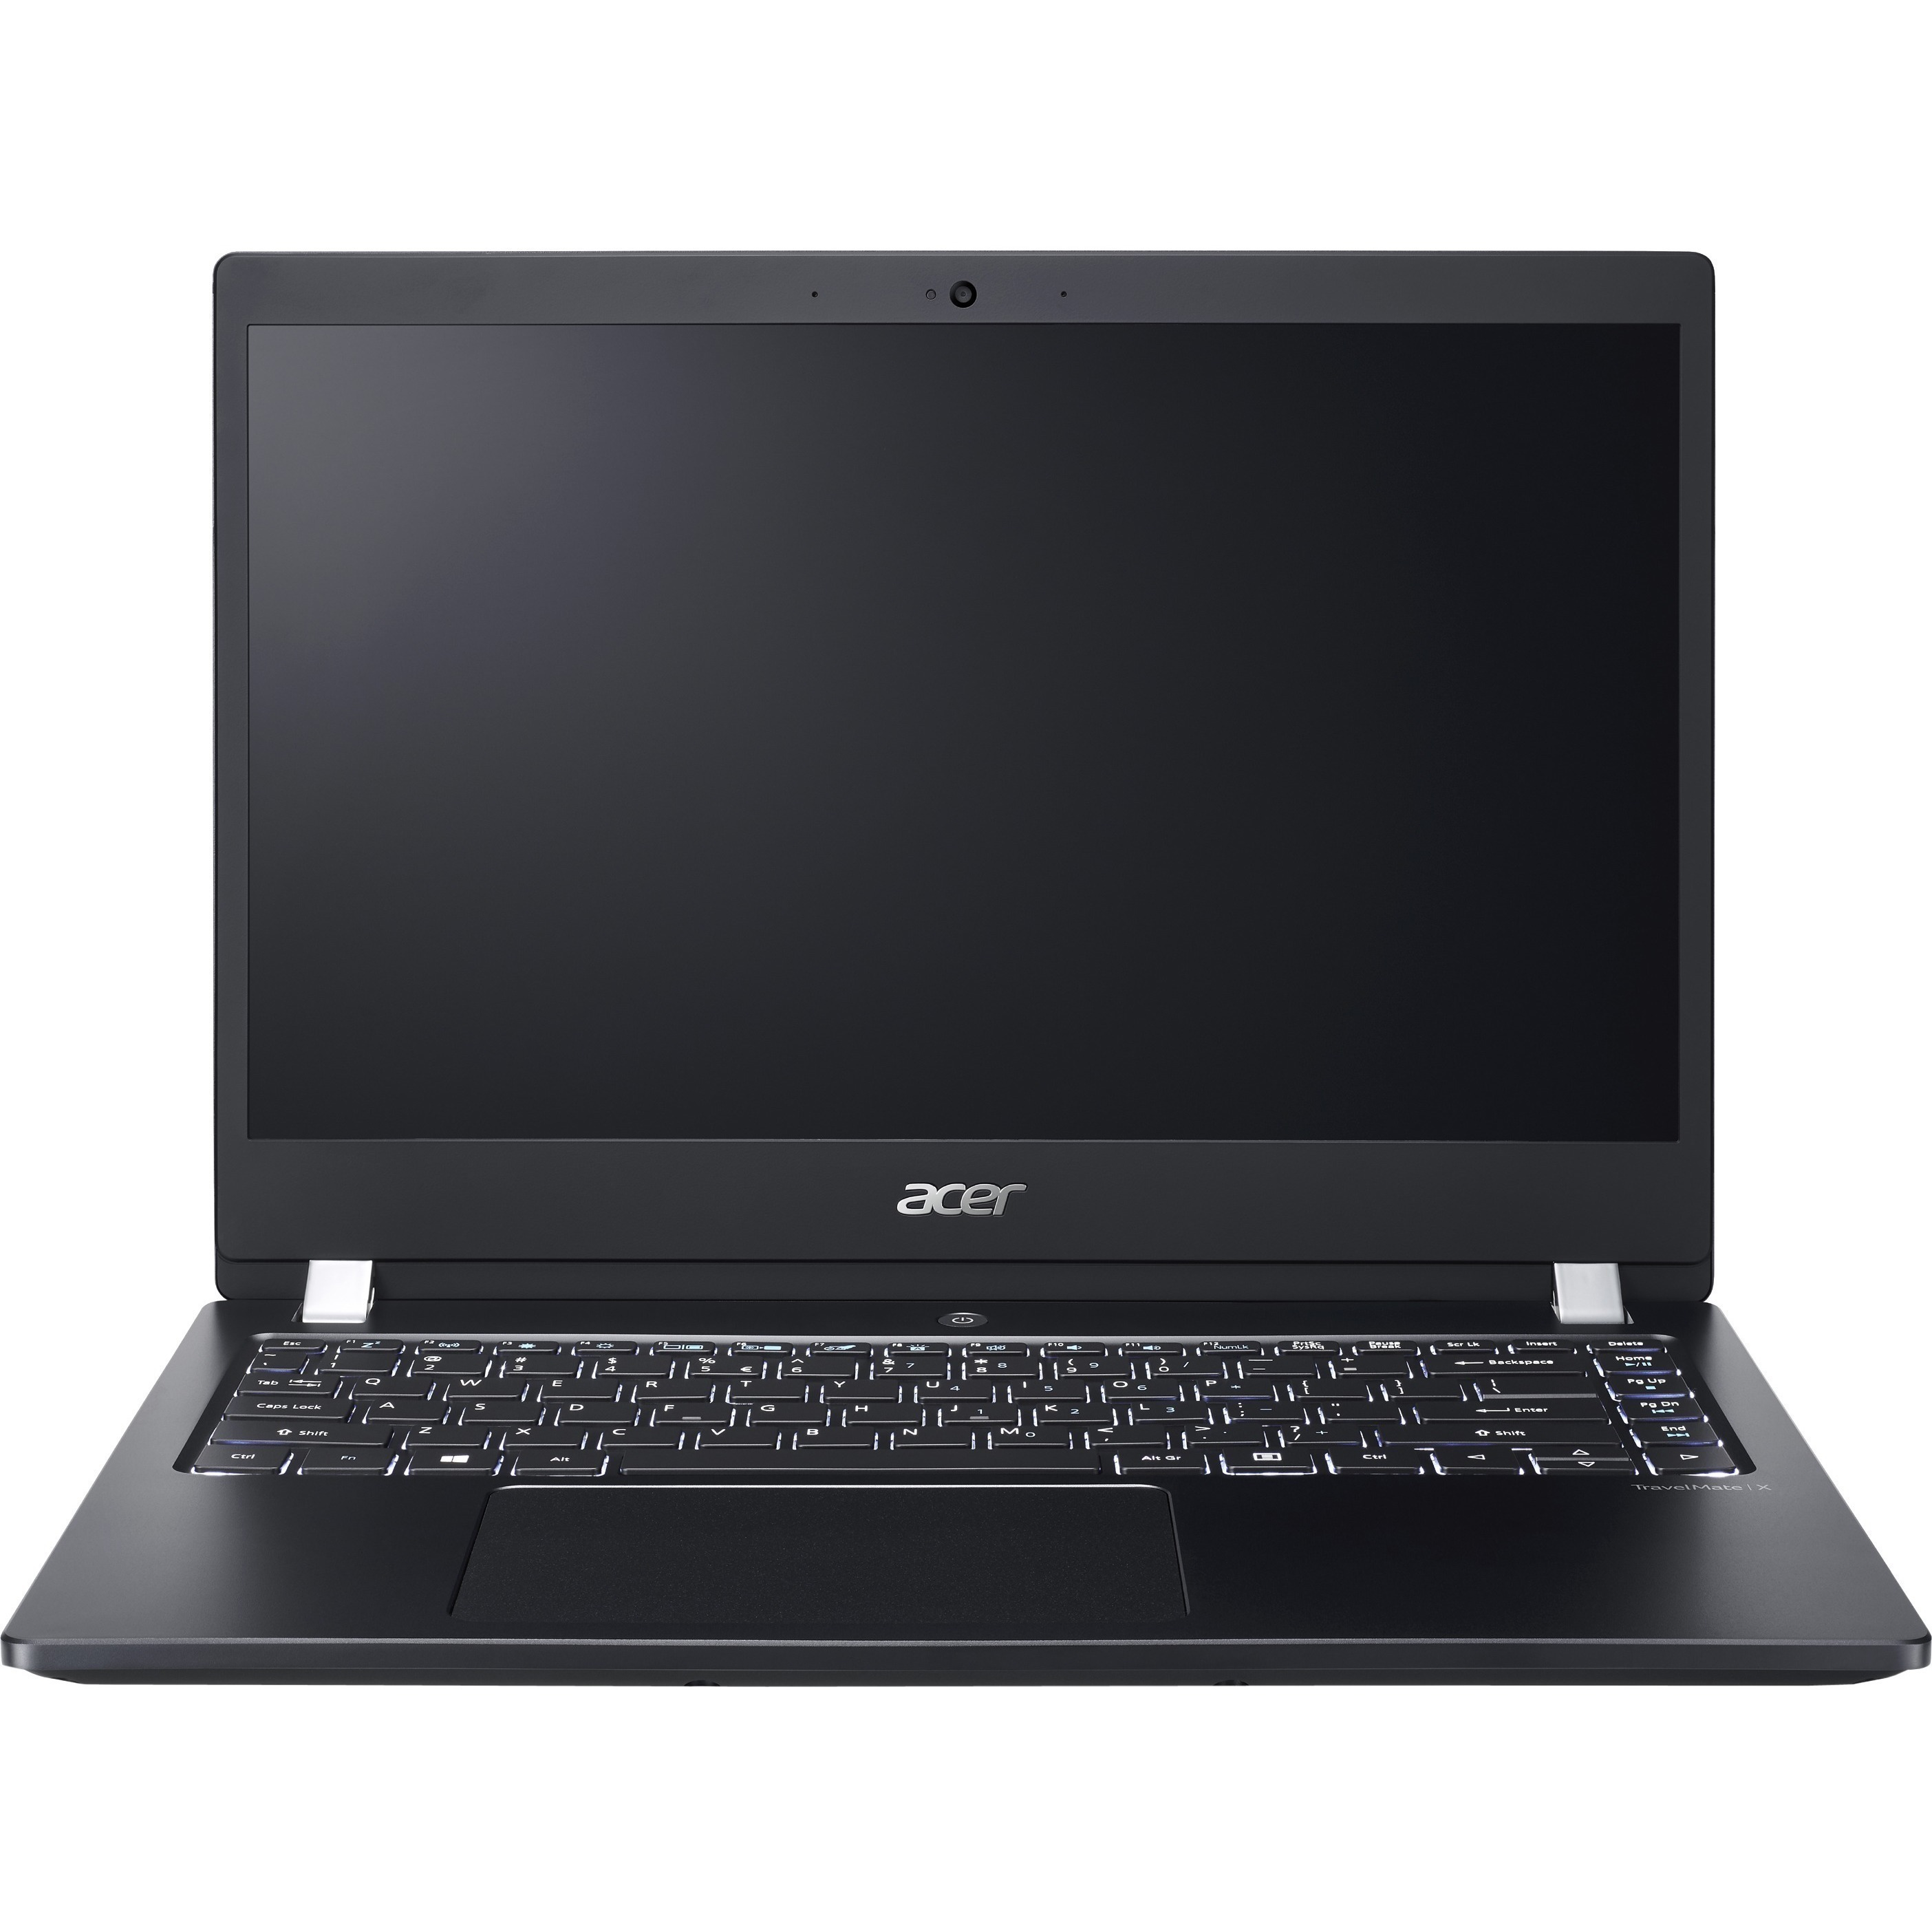 Acer 14in FHD Ci5 8250U 8G 256G SSD Windows 10 Laptop